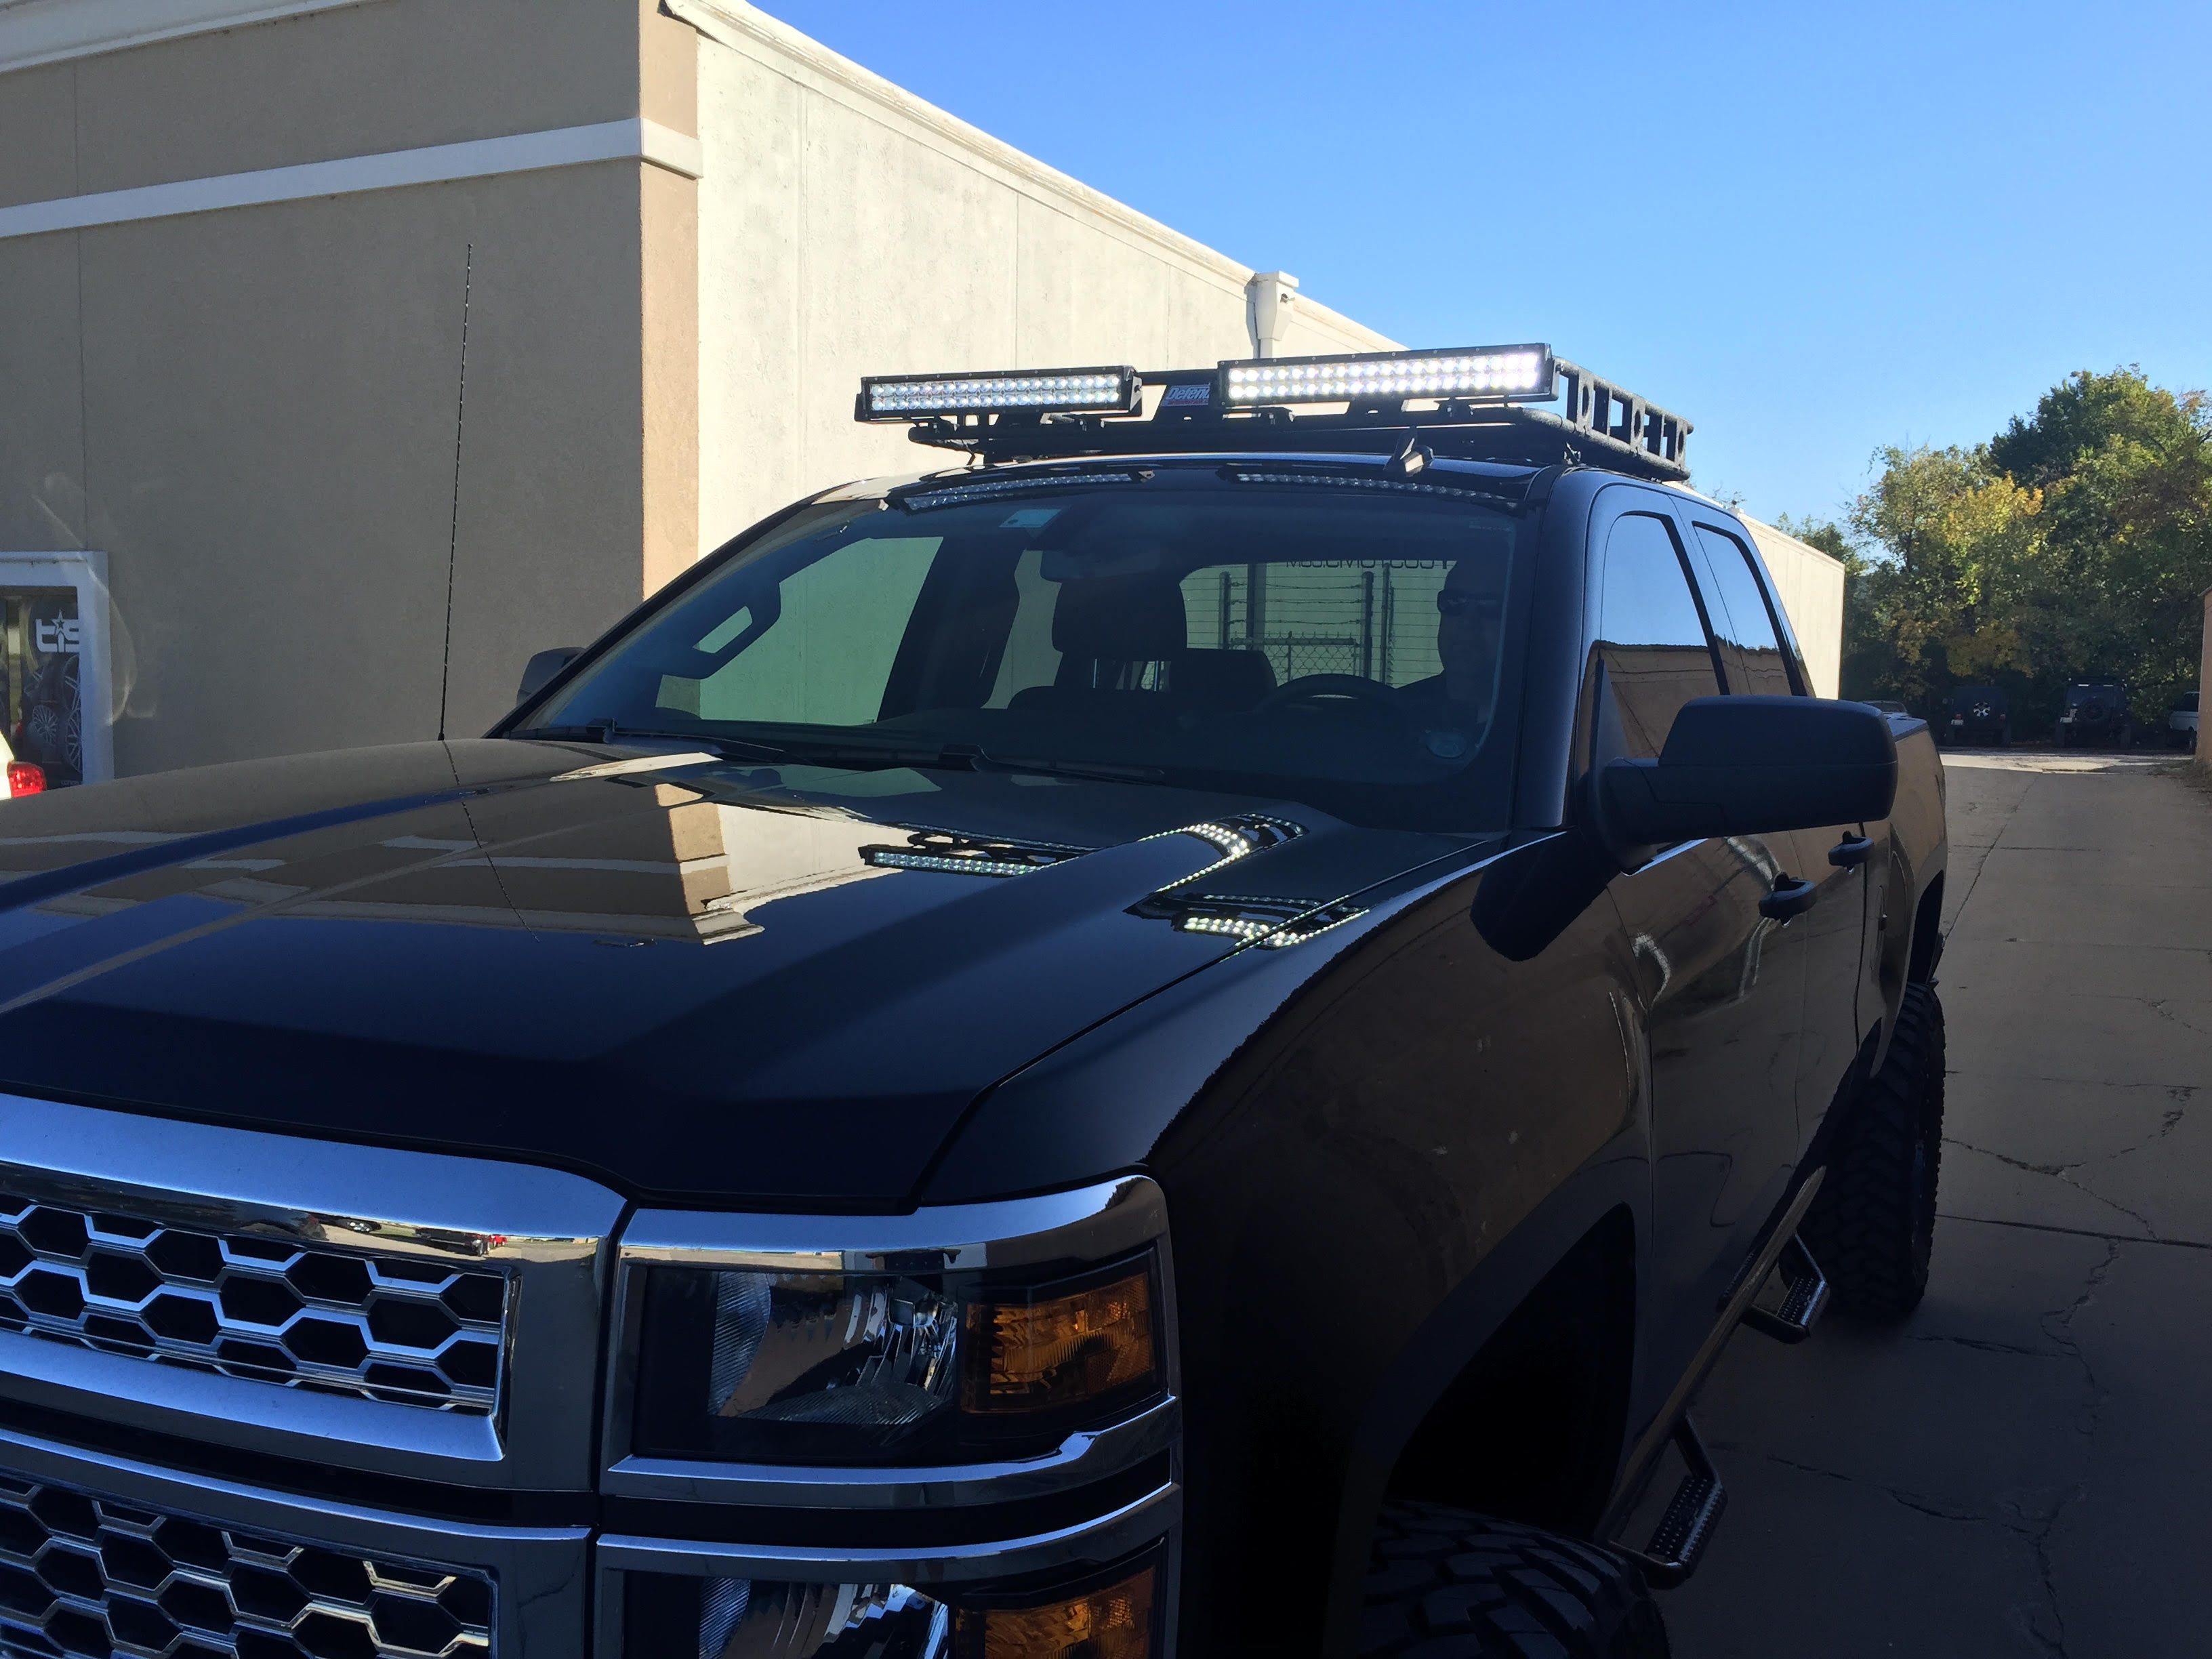 Silverado Roof Rack - Integrity Customs